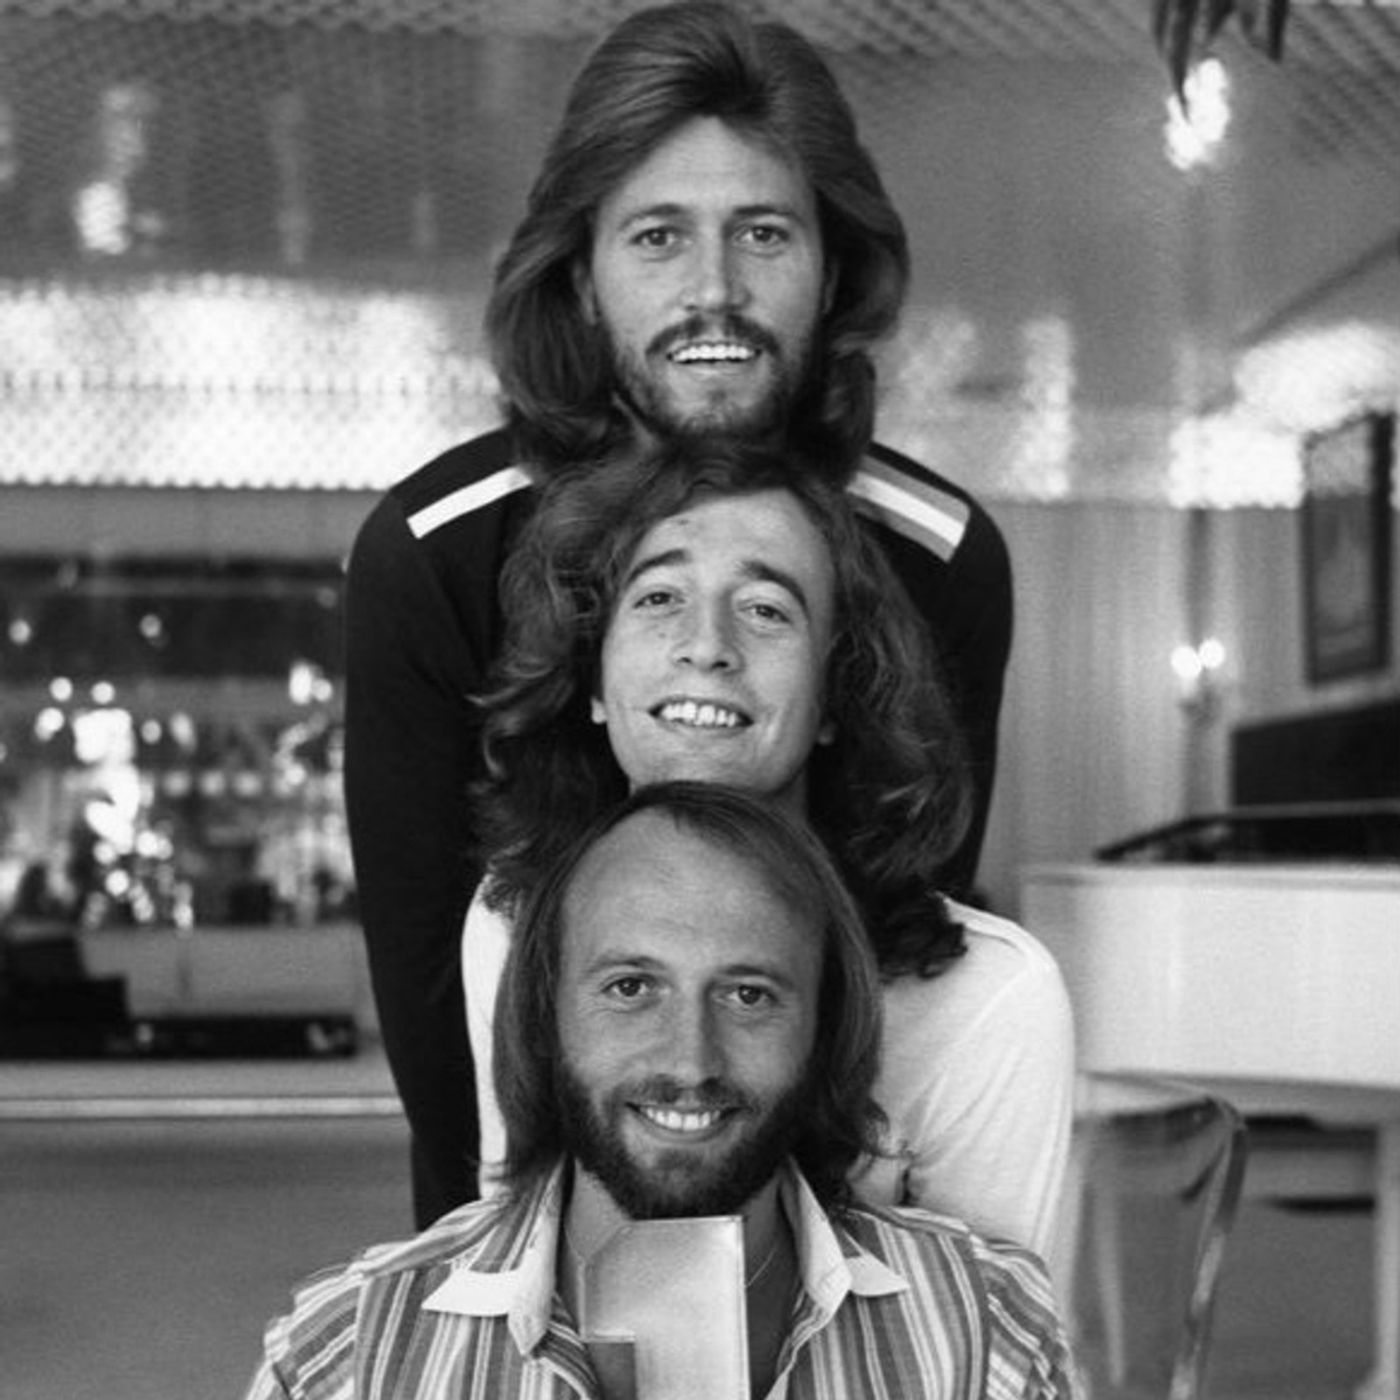 The Bee Gees - 4:12:21, 2.00 PM